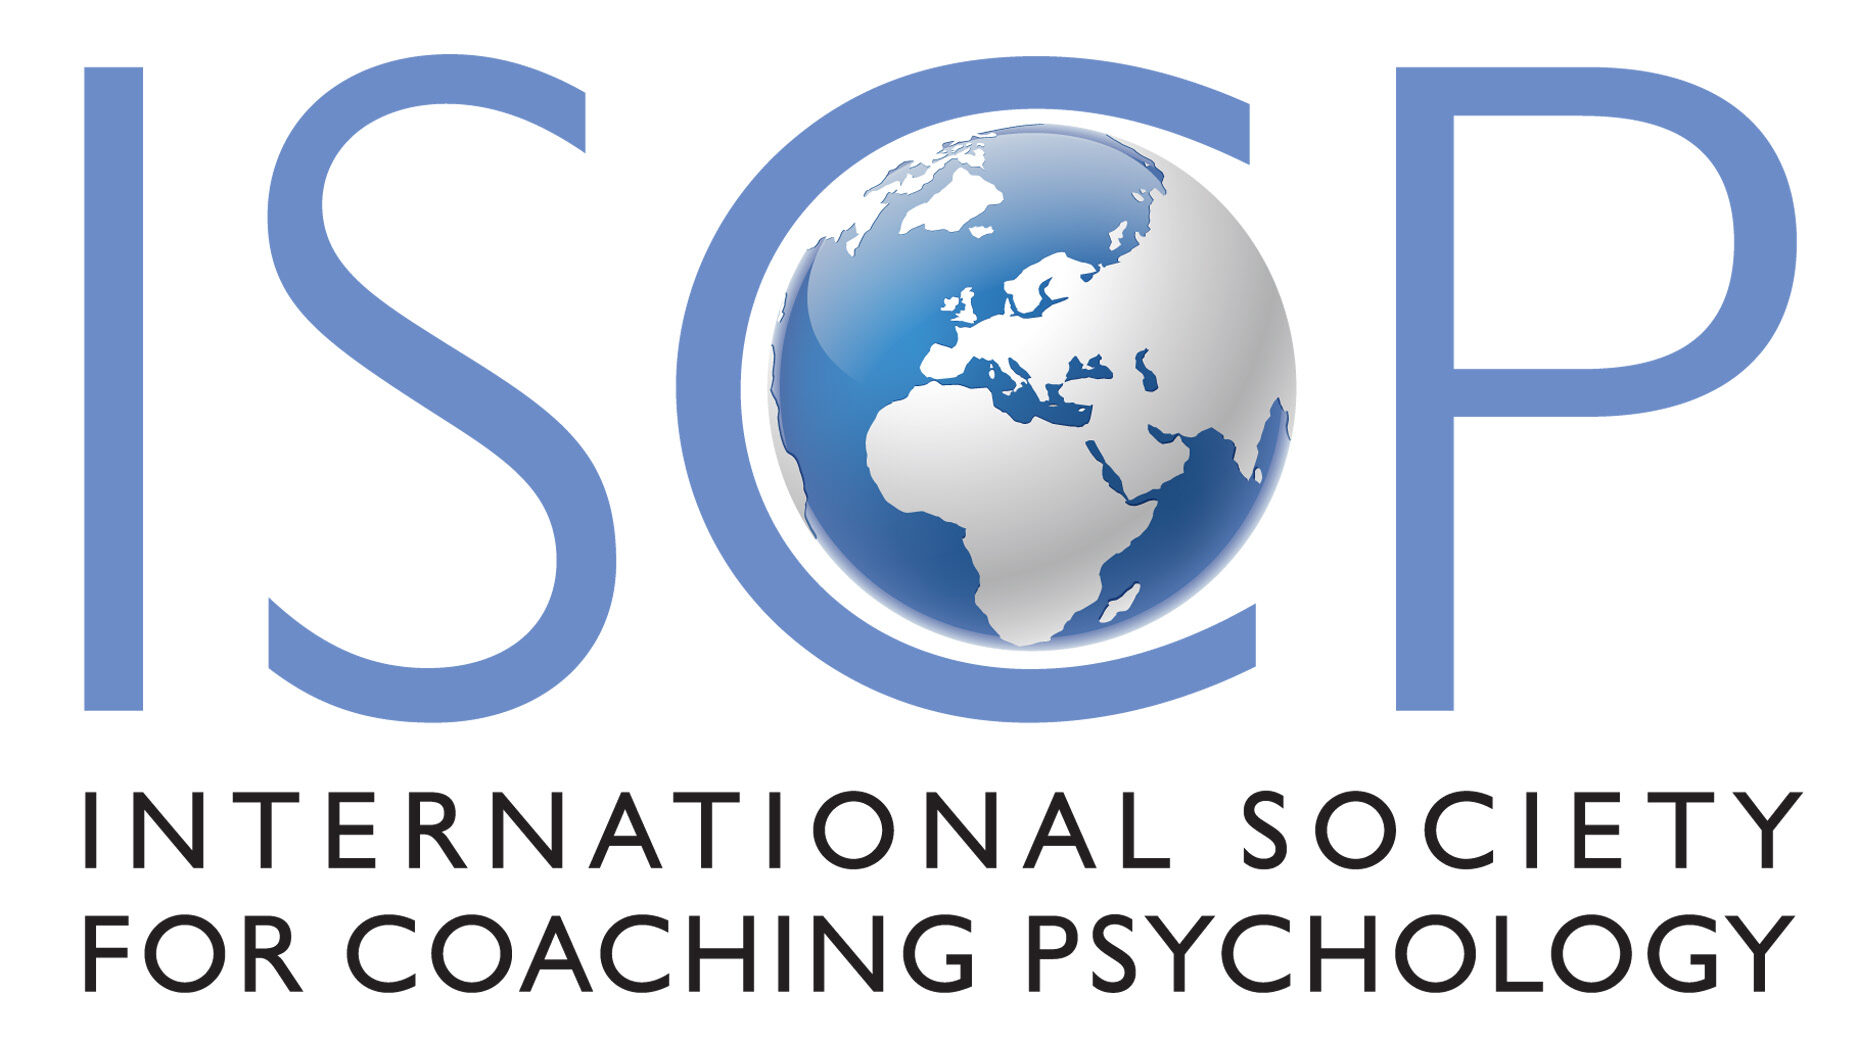 ISCP International Centre for Coaching Psychology Research